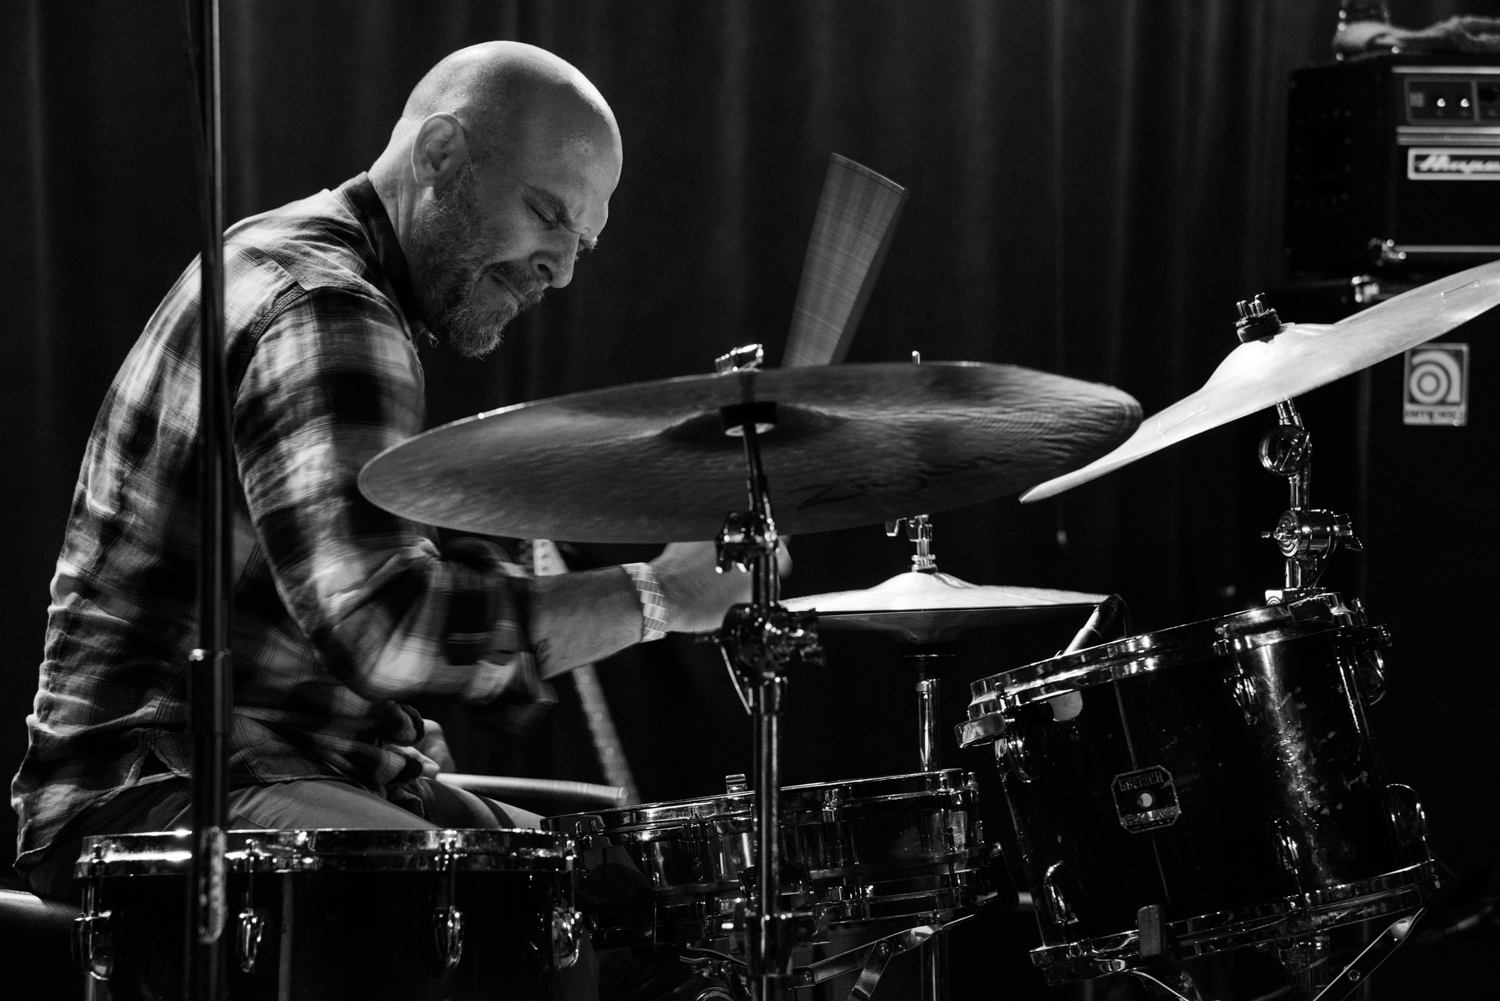 Dave King on drums - Happy Apple at (Le) Poisson Rouge on Wednesday night, January 13.